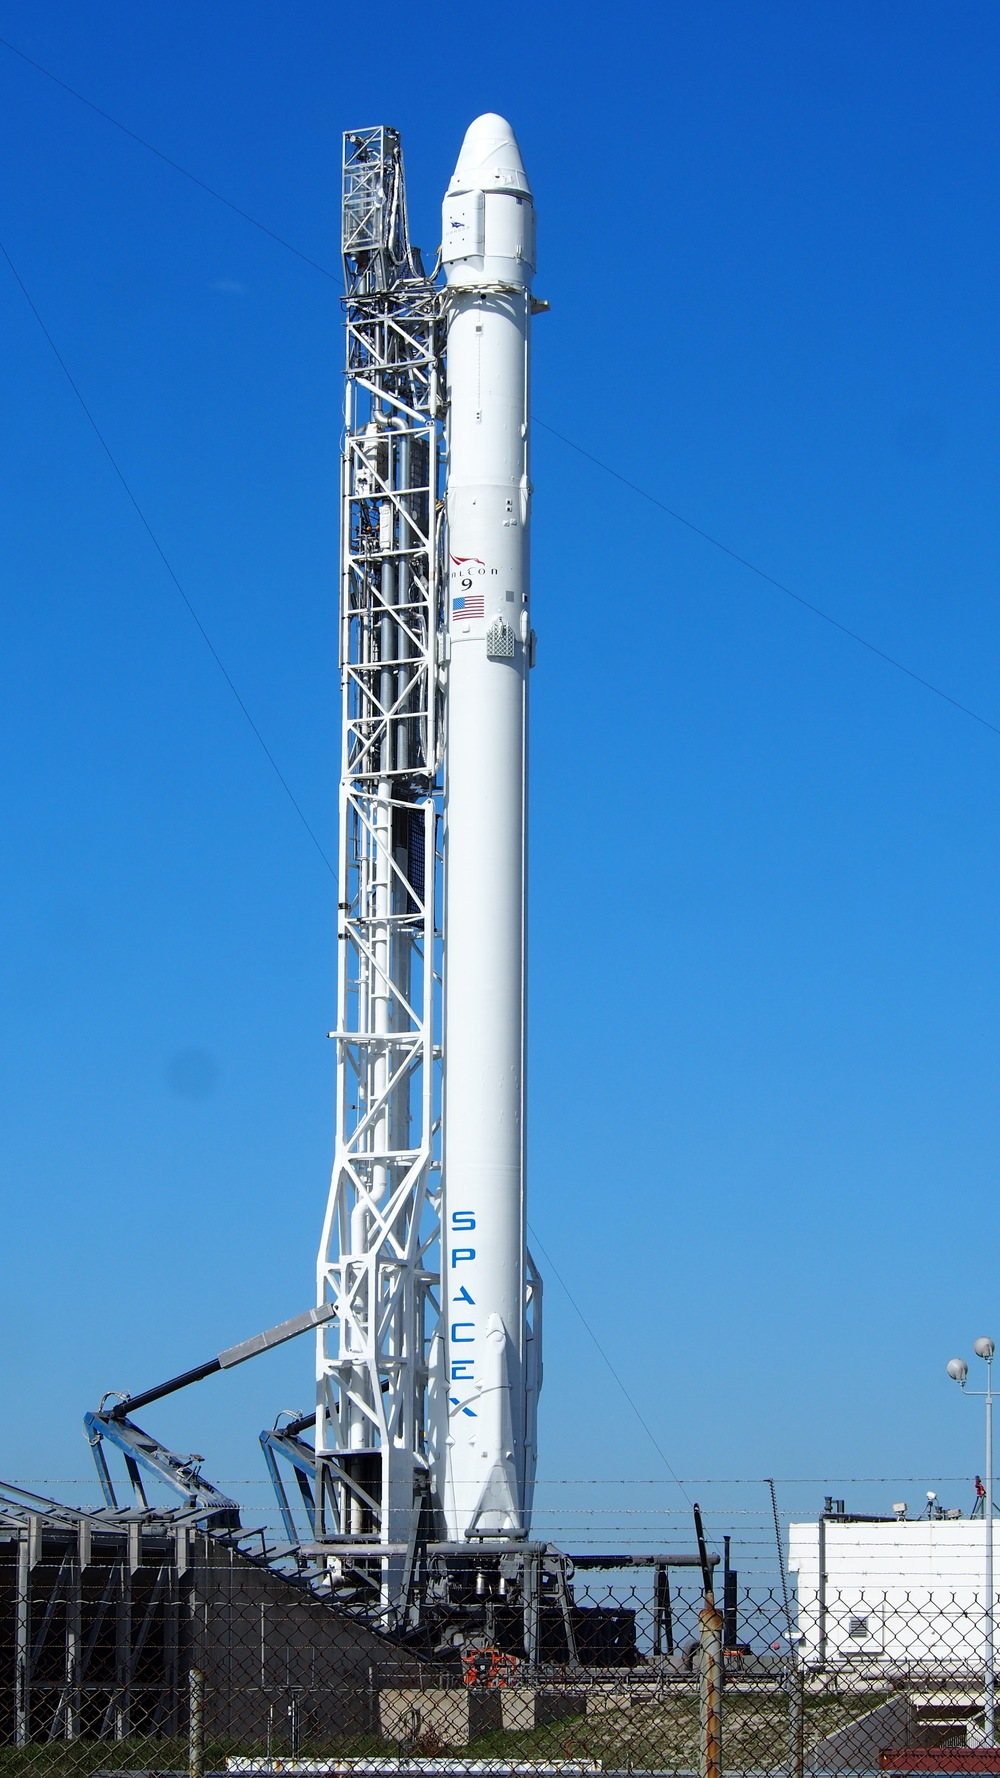 SpaceX's Falcon 9 at SLC-40